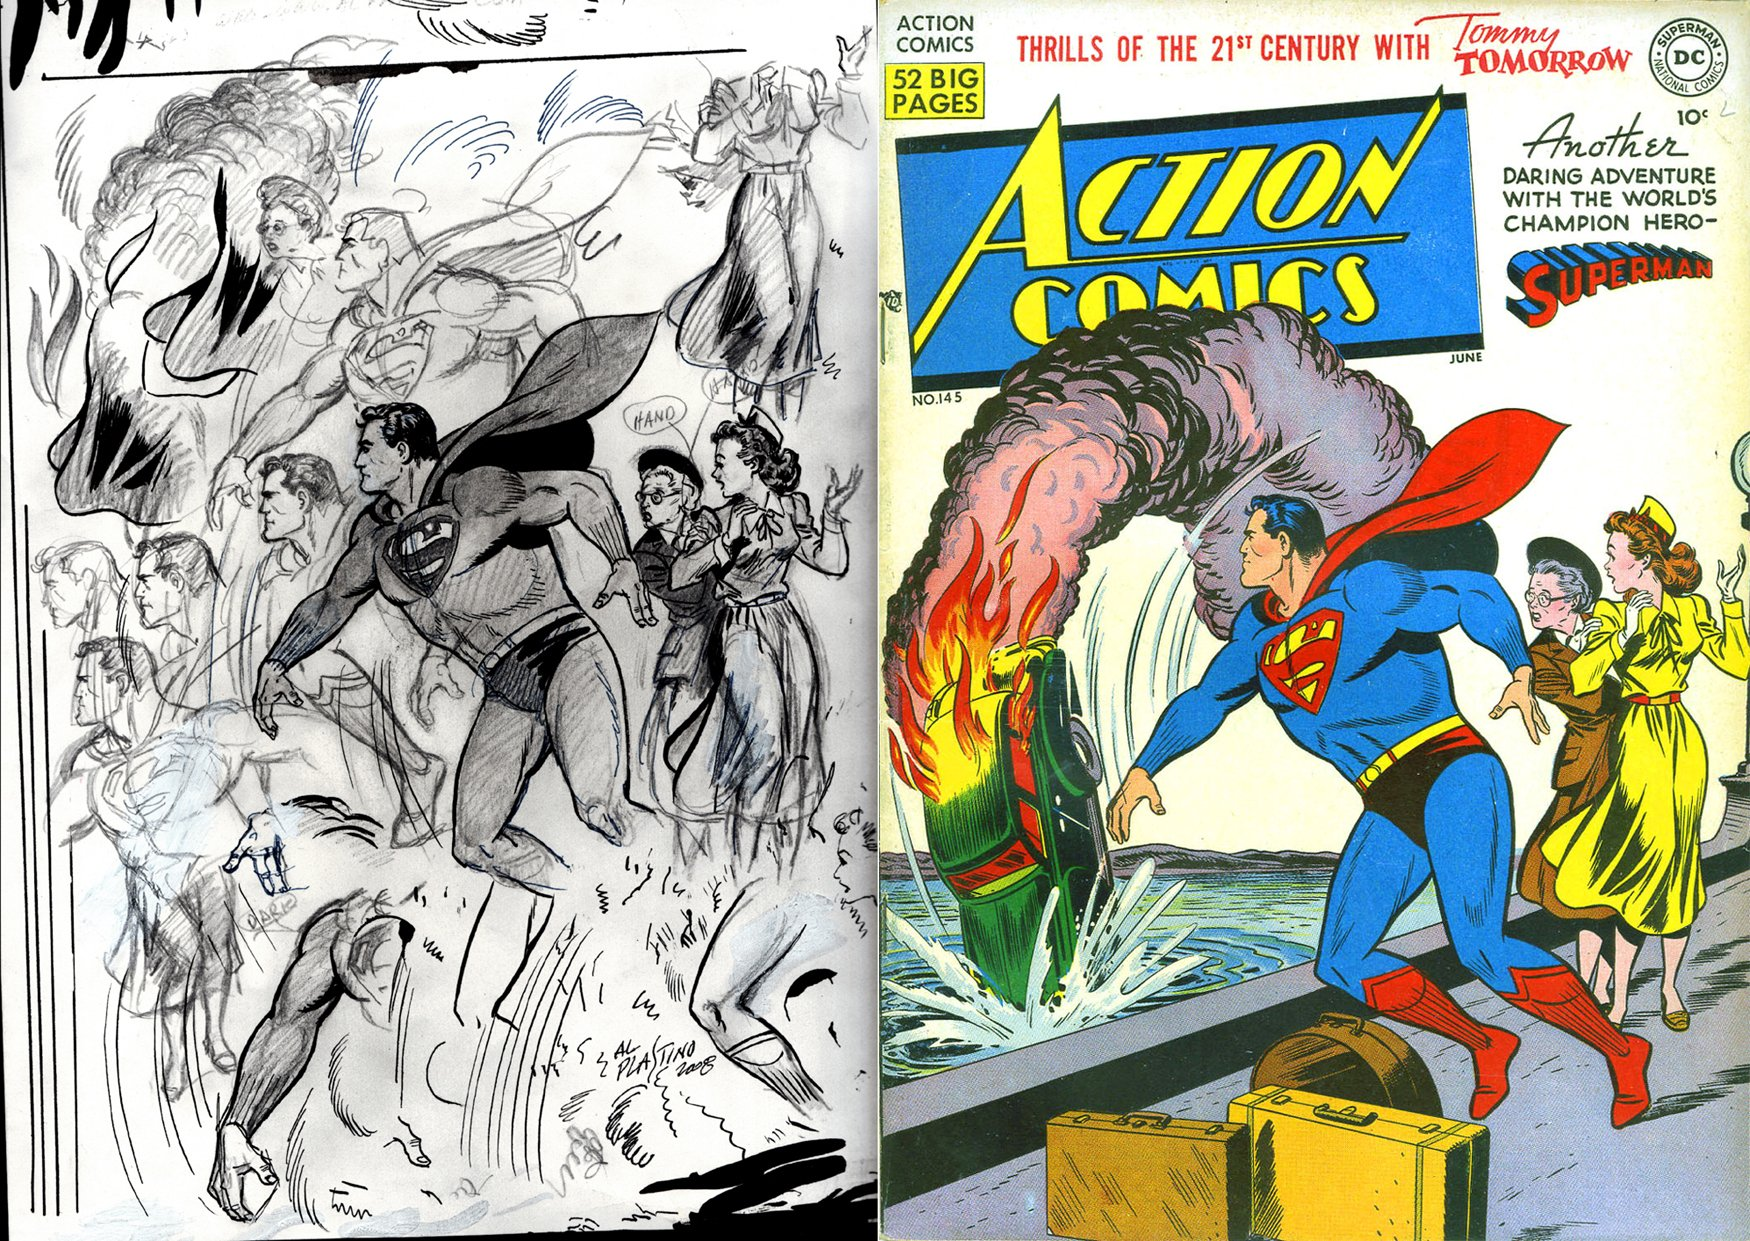 Action Comics #145 Cover Study Drawings (SOLD LIVE ON 'DUELING DEALERS OF COMIC ART' EPISODE #30 PODCAST ON 8-9-2021 (RE-WATCH THIS FUNNY ART SELLING SHOW HERE)